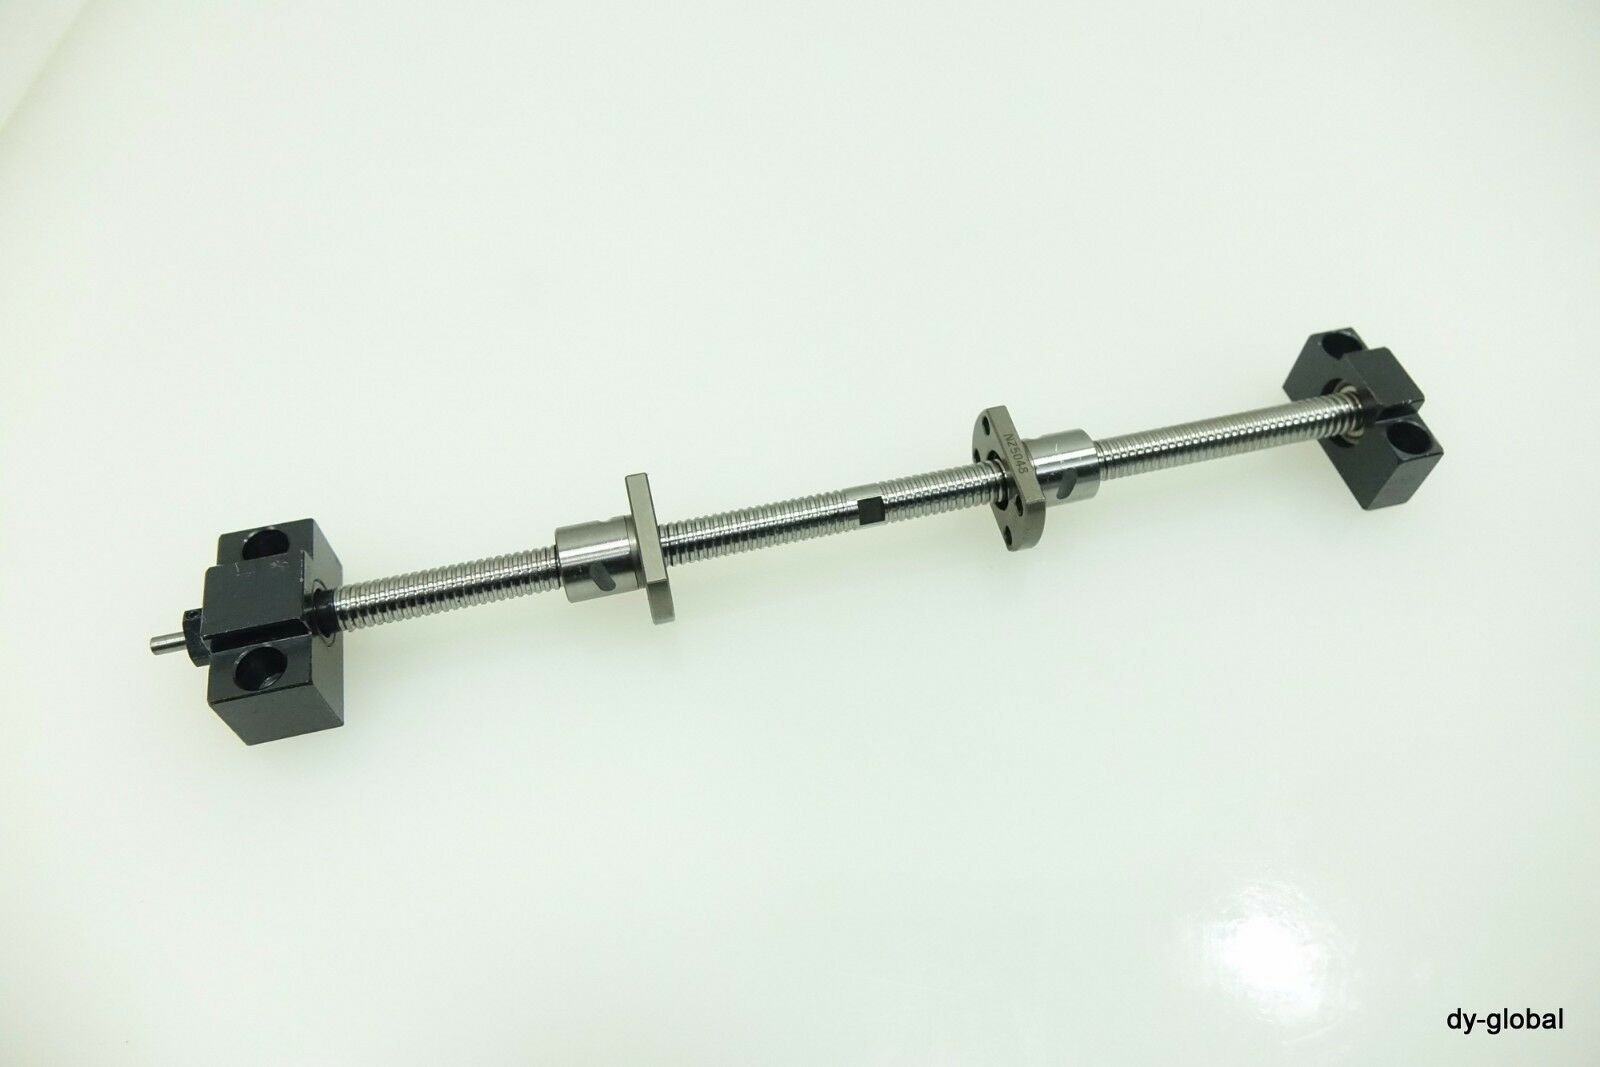 KSS1002+287L Japan Ground Ball Screw Right and left Helix aligner BSC-I-201=B803